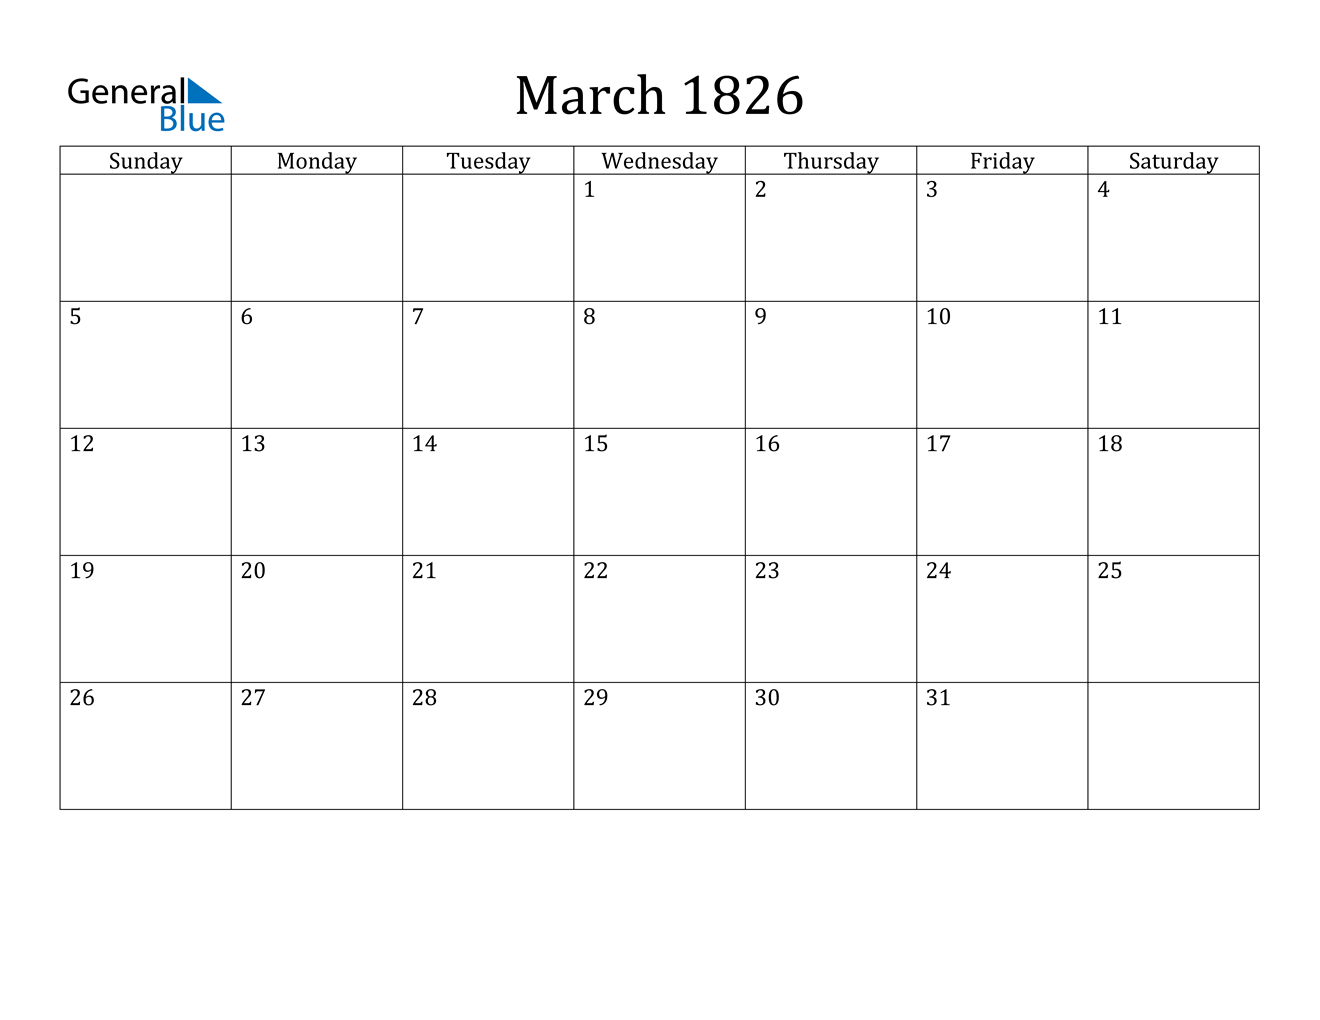 Image of March 1826 Calendar